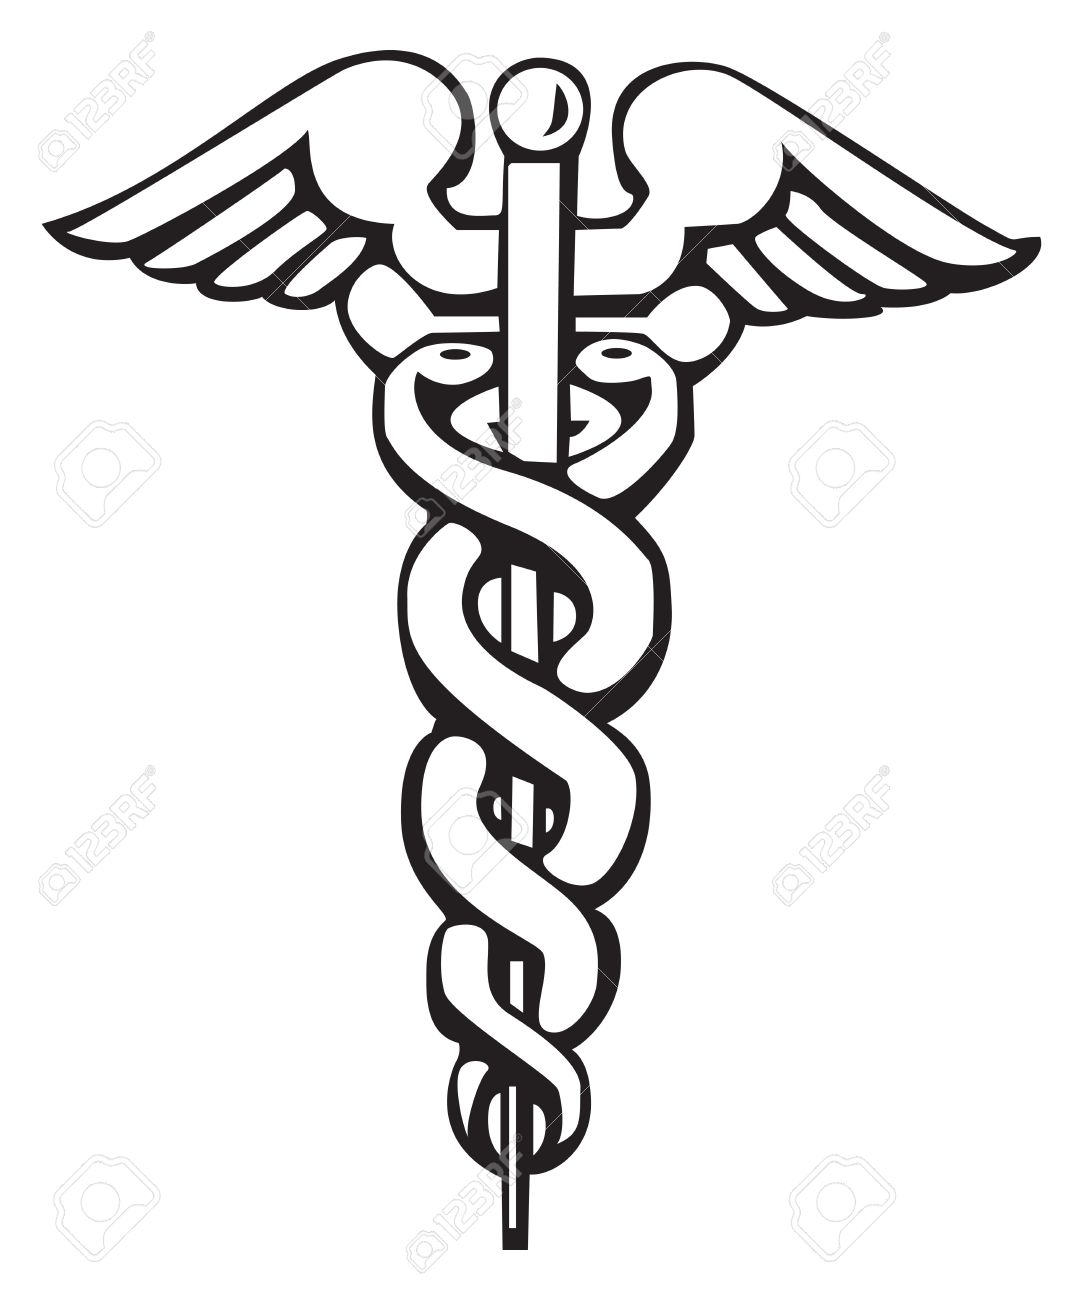 caduceus greek sign symbol for tattoo or artwork medical rh 123rf com medical symbol vector free medical snake symbol vector